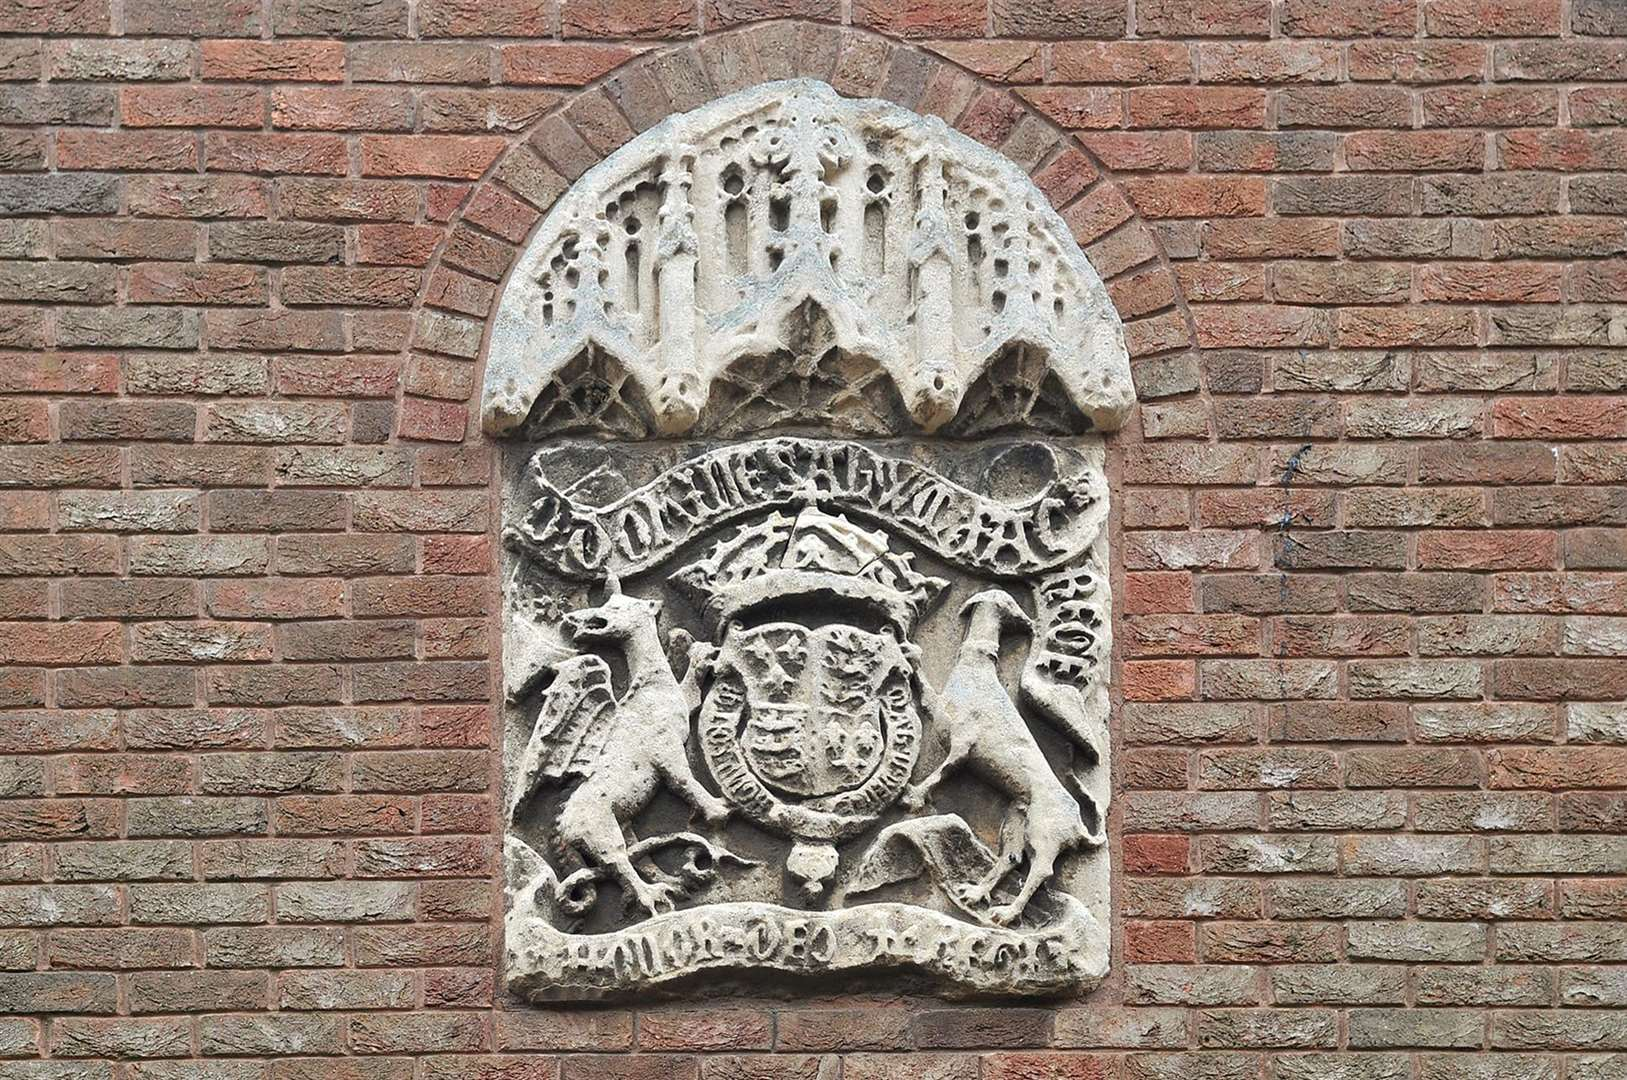 The crest above the entrance to King's Lynn Court in College Lane